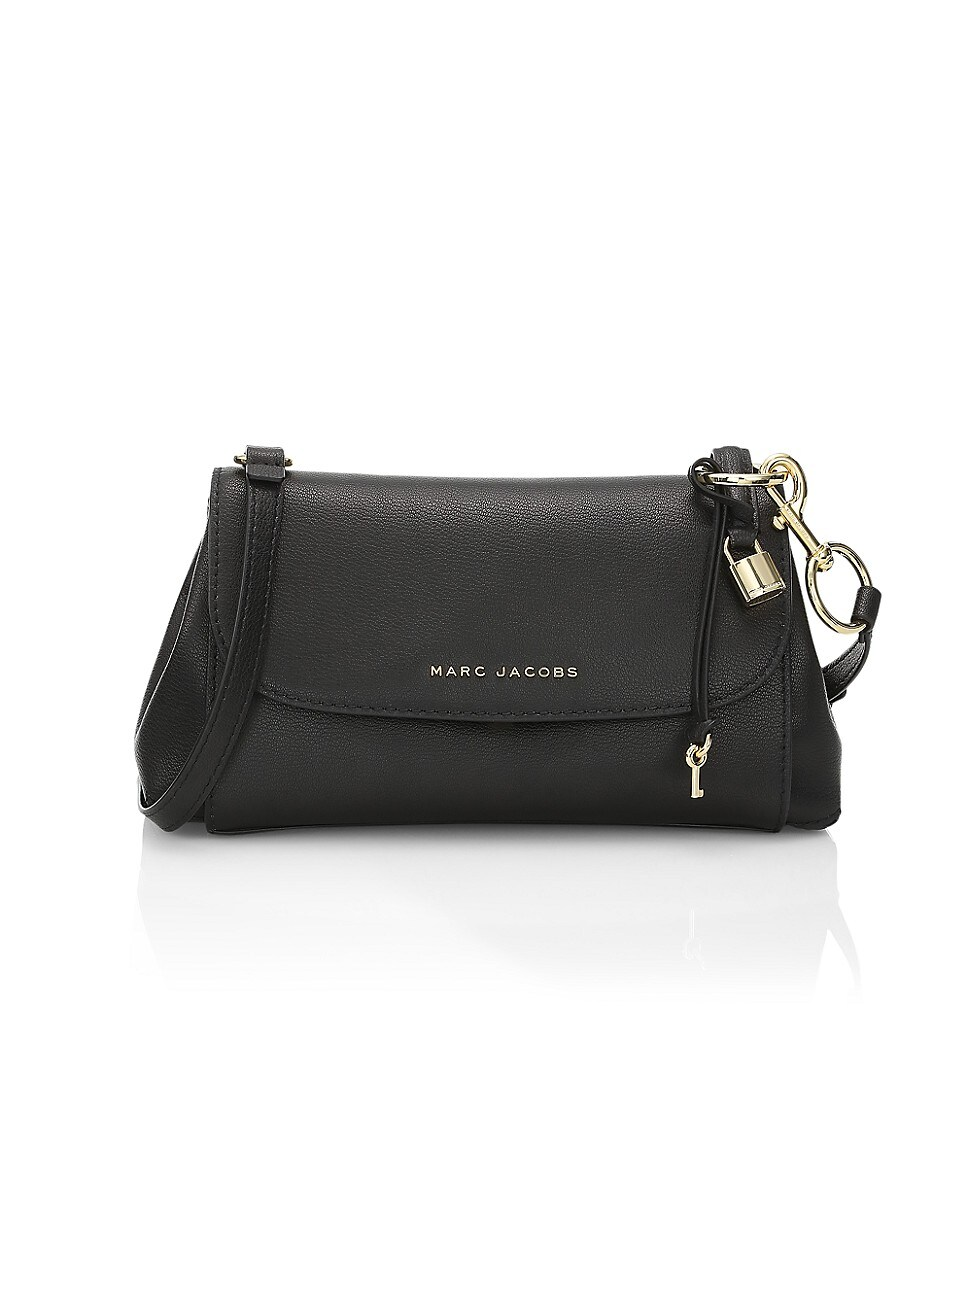 The Marc Jacobs Leathers WOMEN'S BOHO GRIND COATED LEATHER CROSSBODY BAG